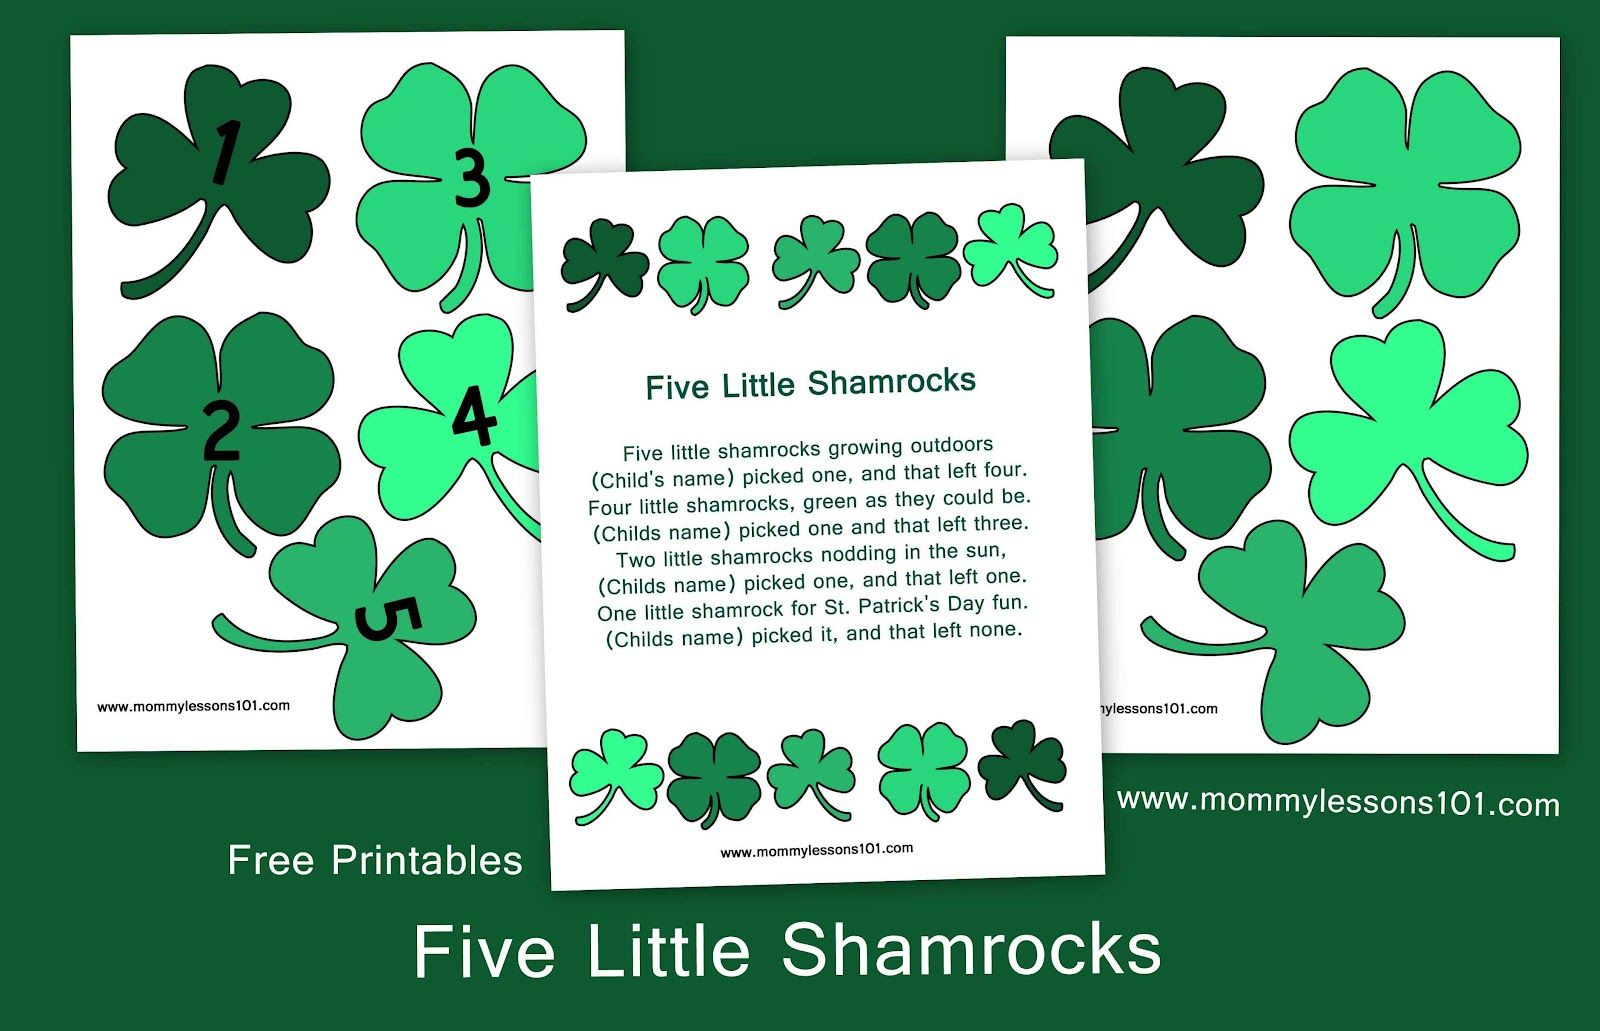 Mommy Lessons 101 Five Little Shamrocks Free